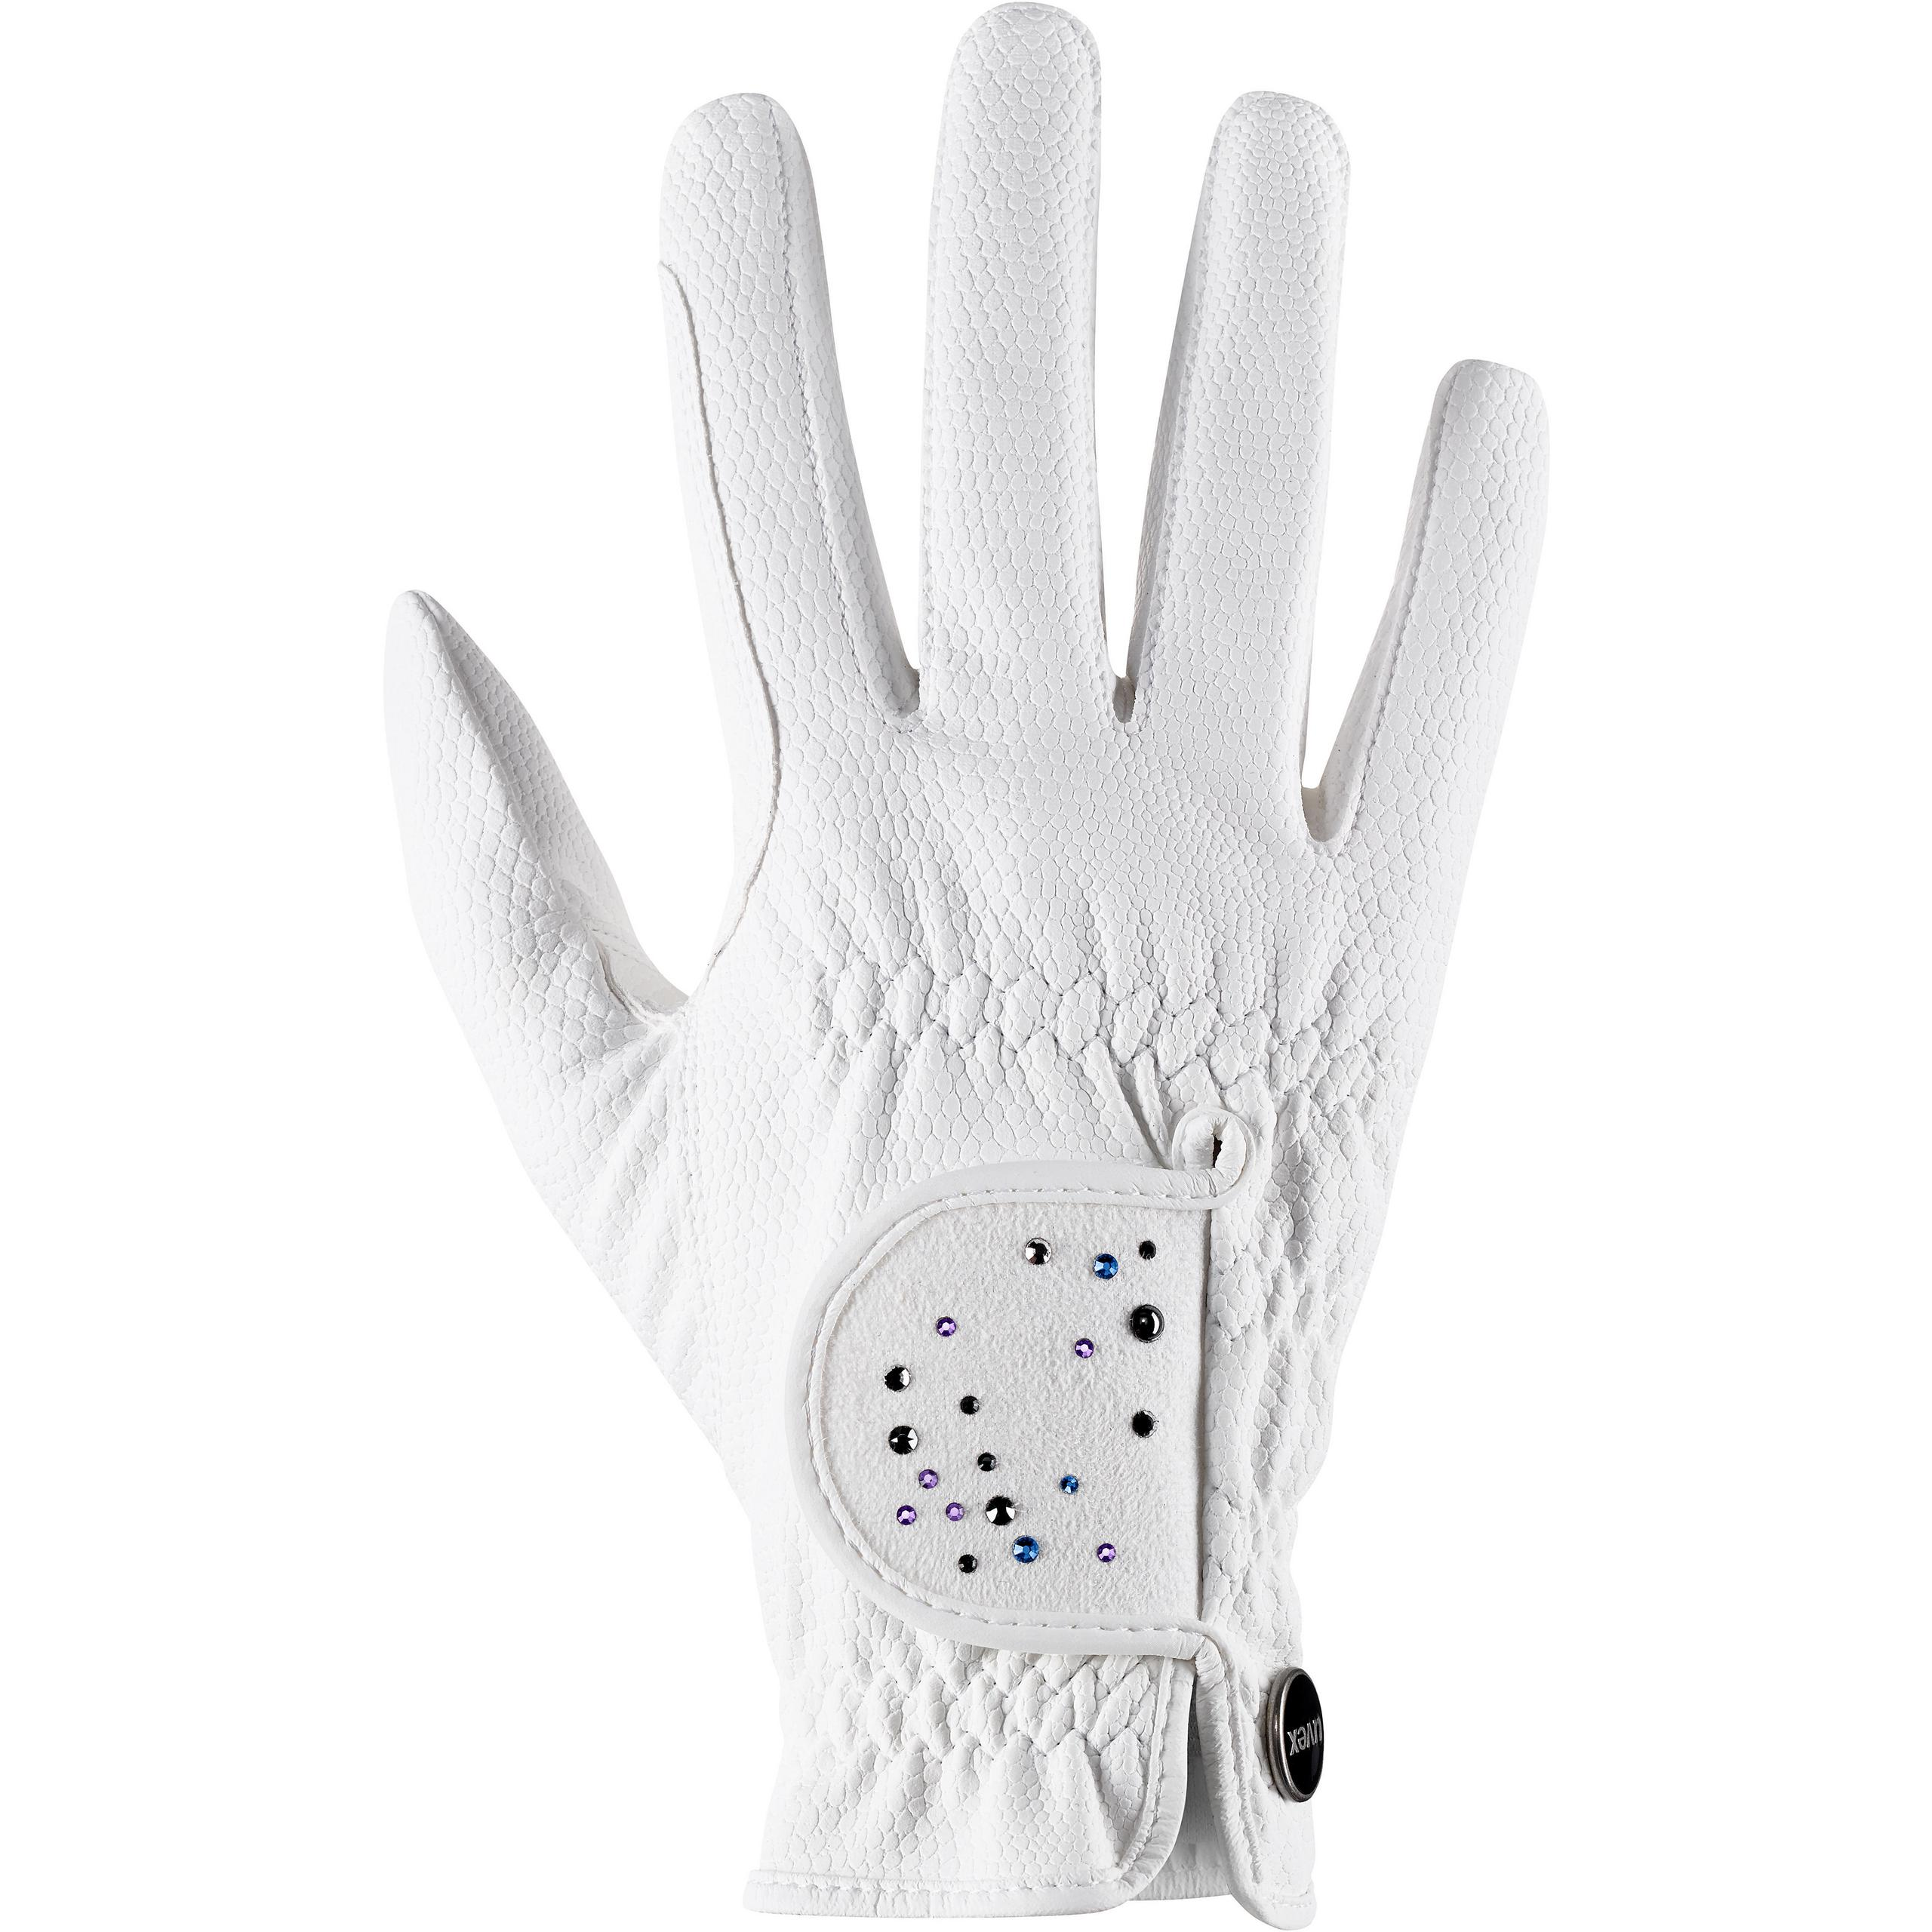 Details about  /Uvex SPORTSTYLE PU Leather Grip Horse Riding GLOVES Black 5-11